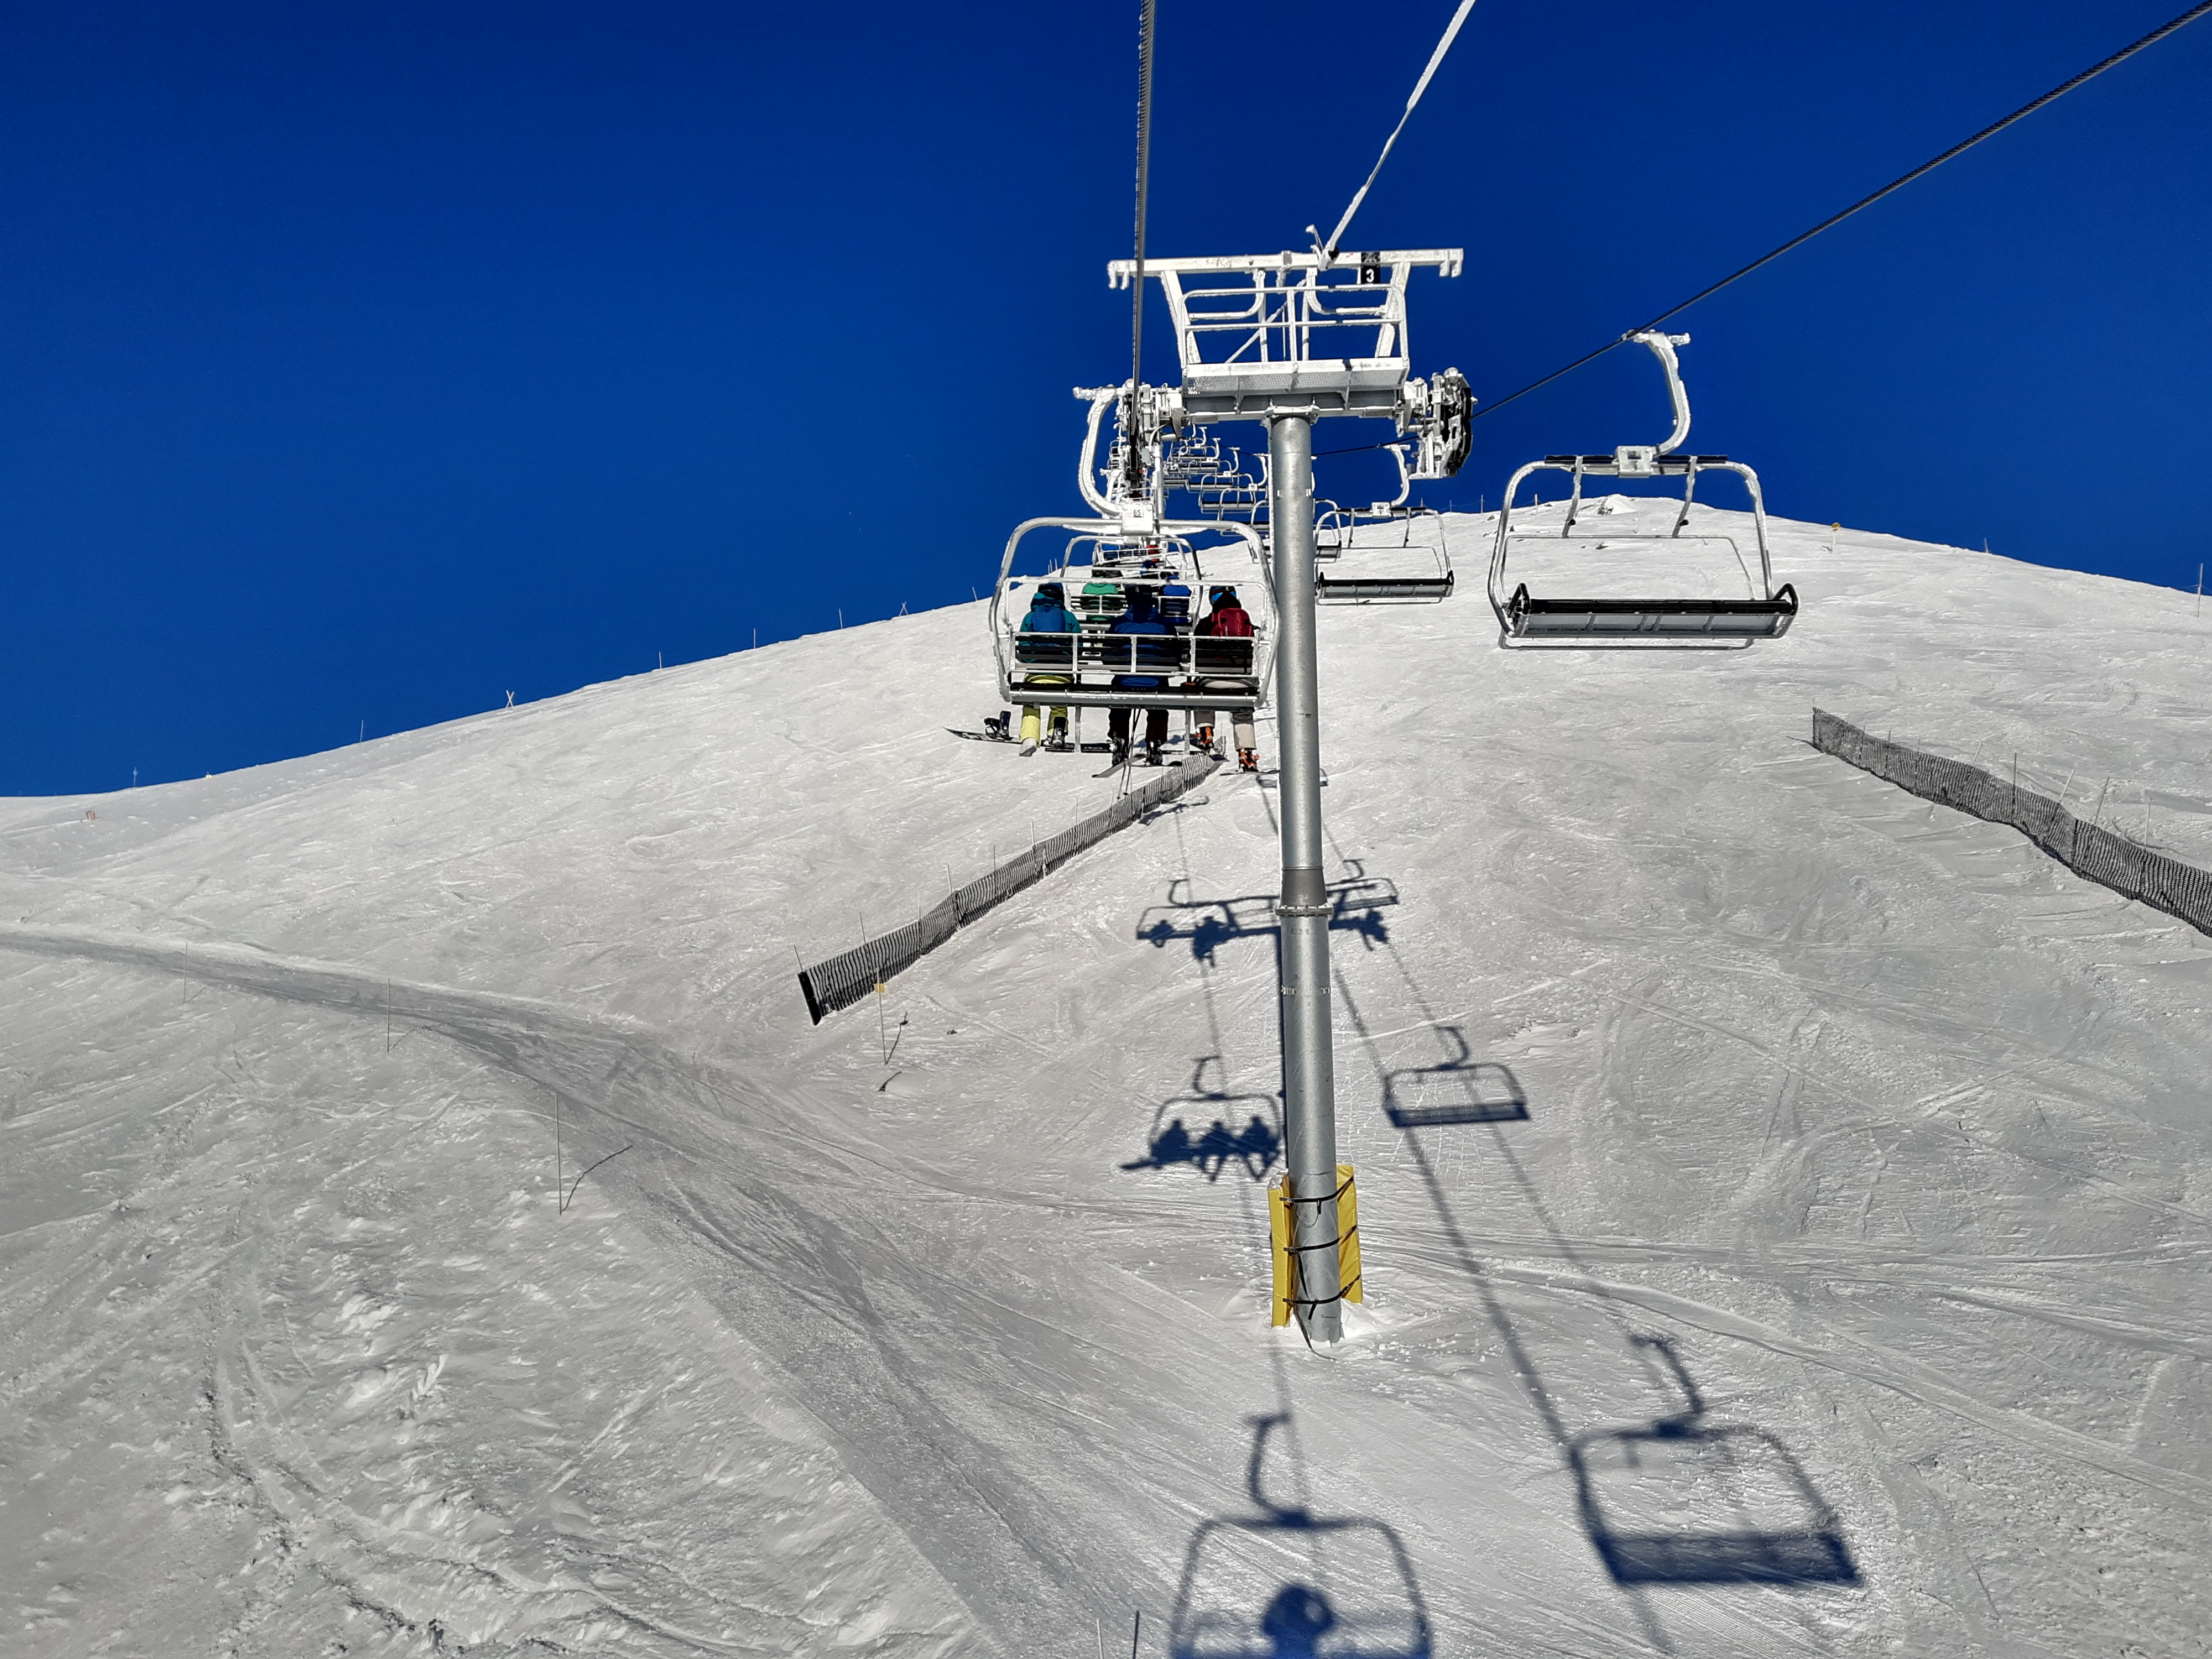 On the new Summit lift that replaced the old Platter